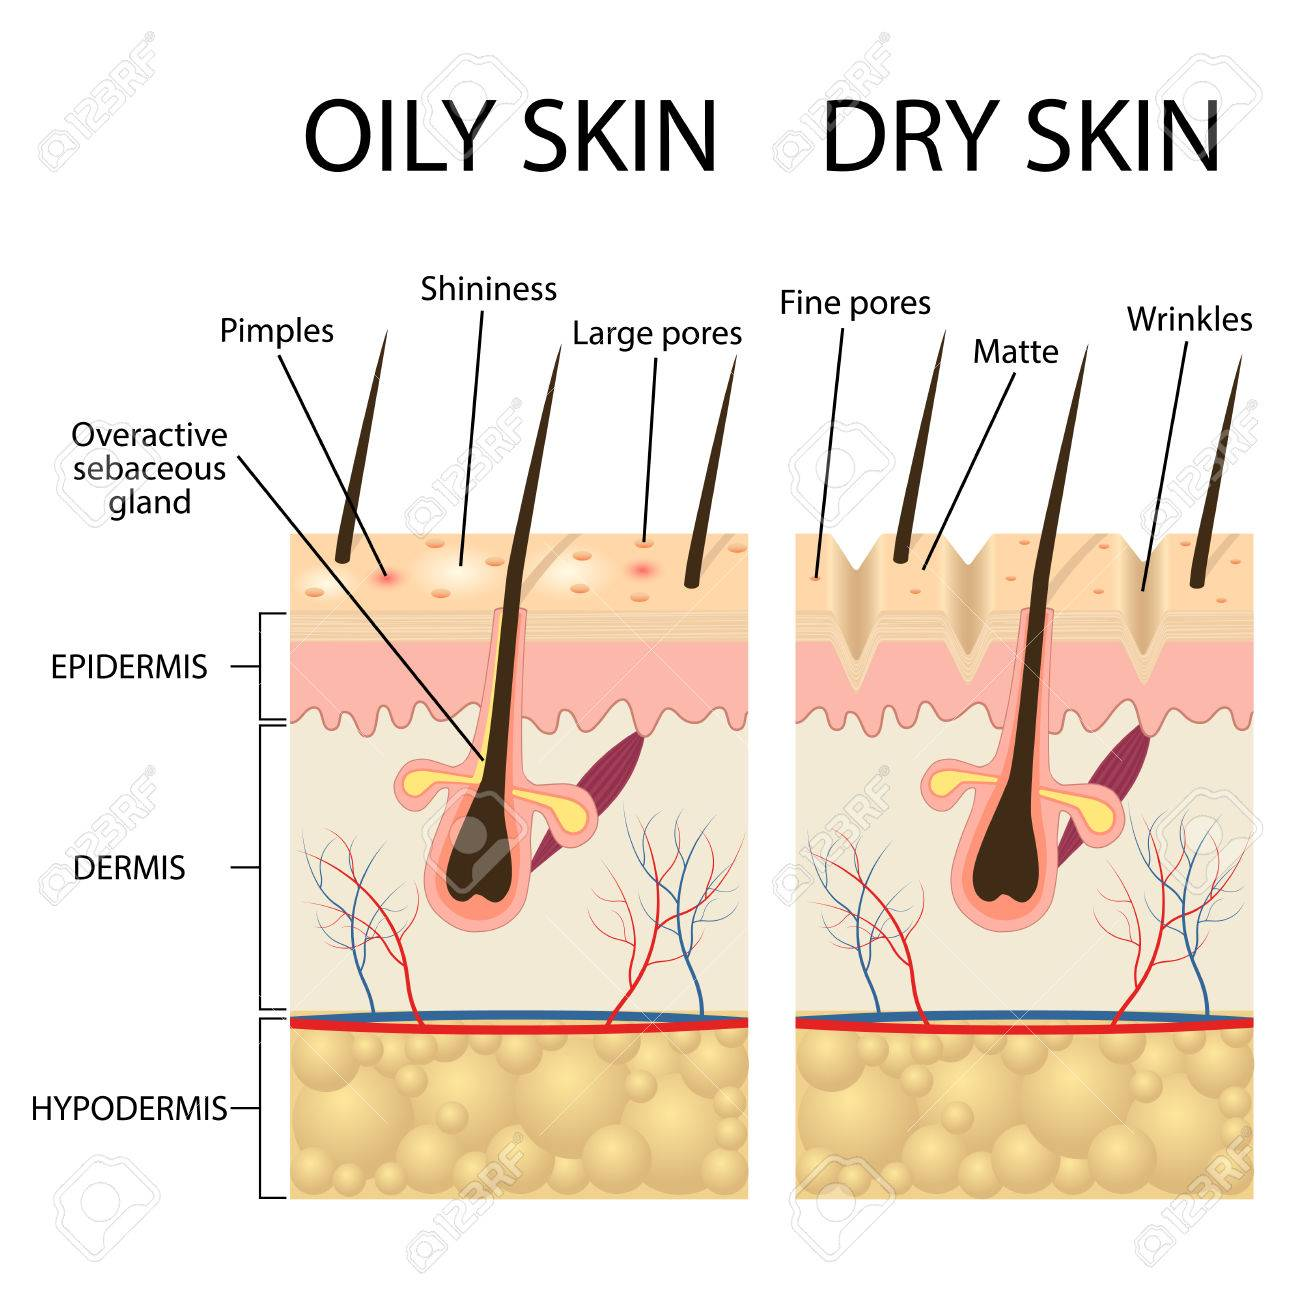 human skin types and conditions. dry and oily. a diagrammatic.. royalty  free cliparts, vectors, and stock illustration. image 74500220.  123rf.com